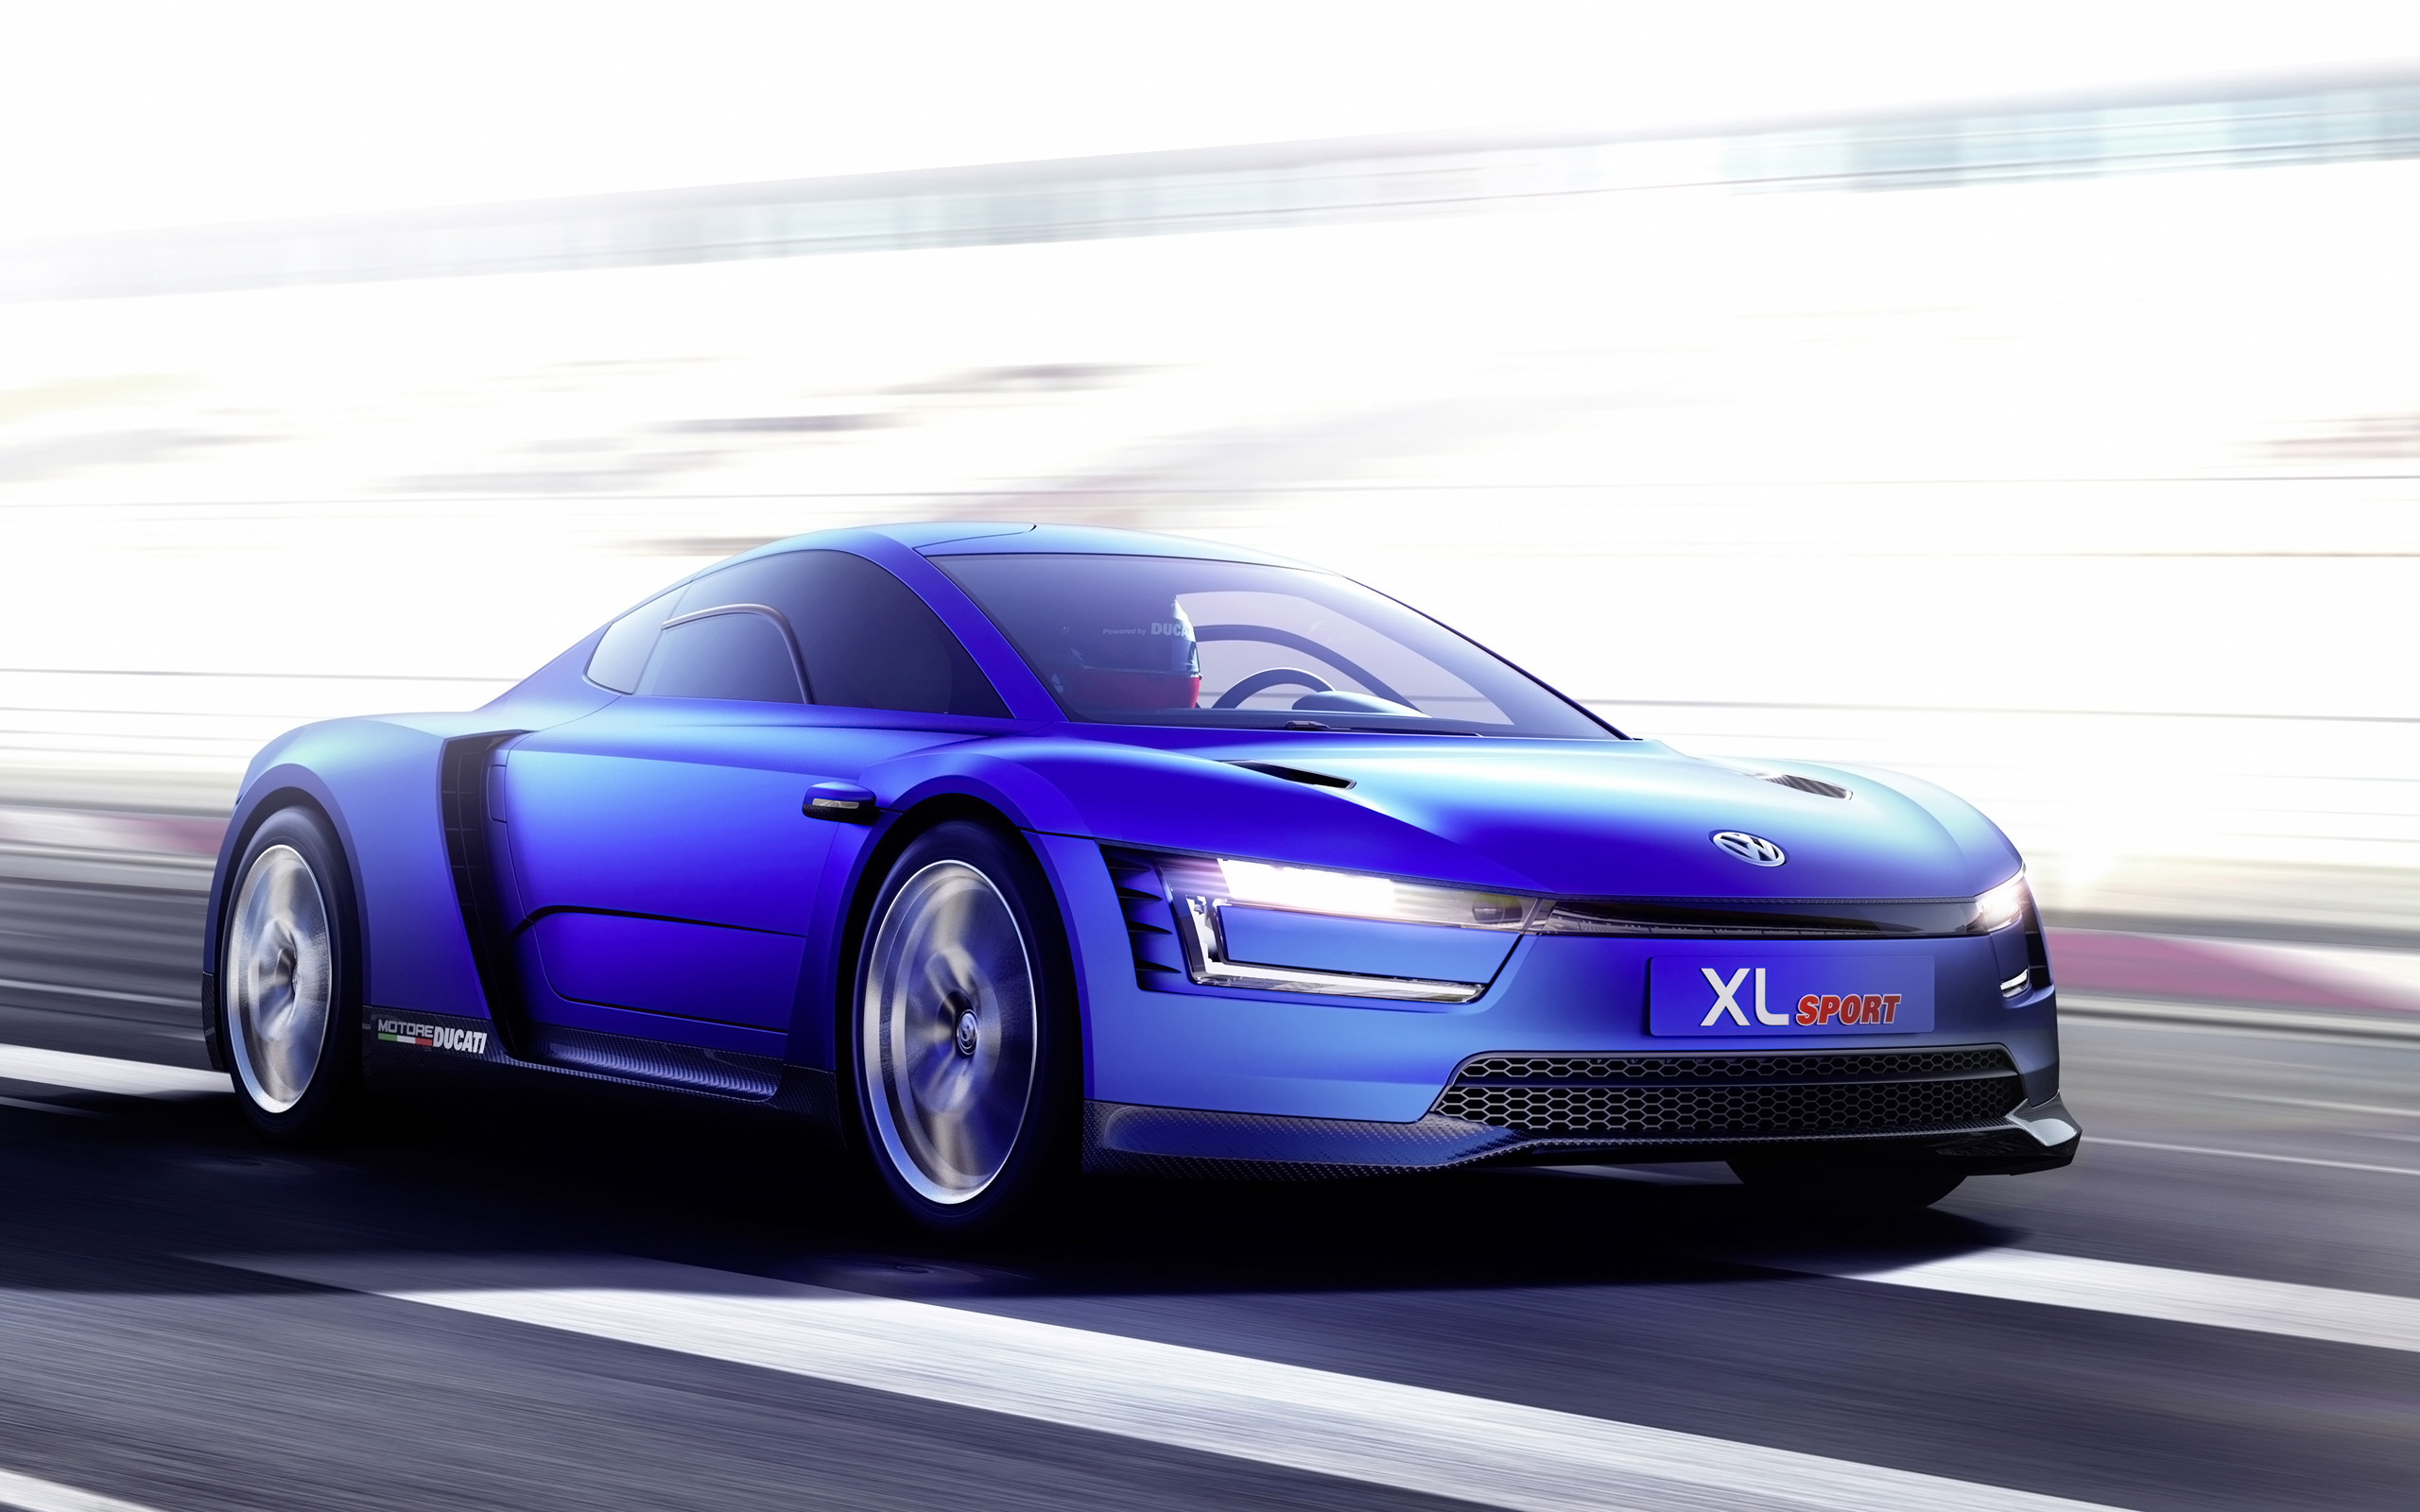 awesome volkswagen xl sport wallpaper 47090